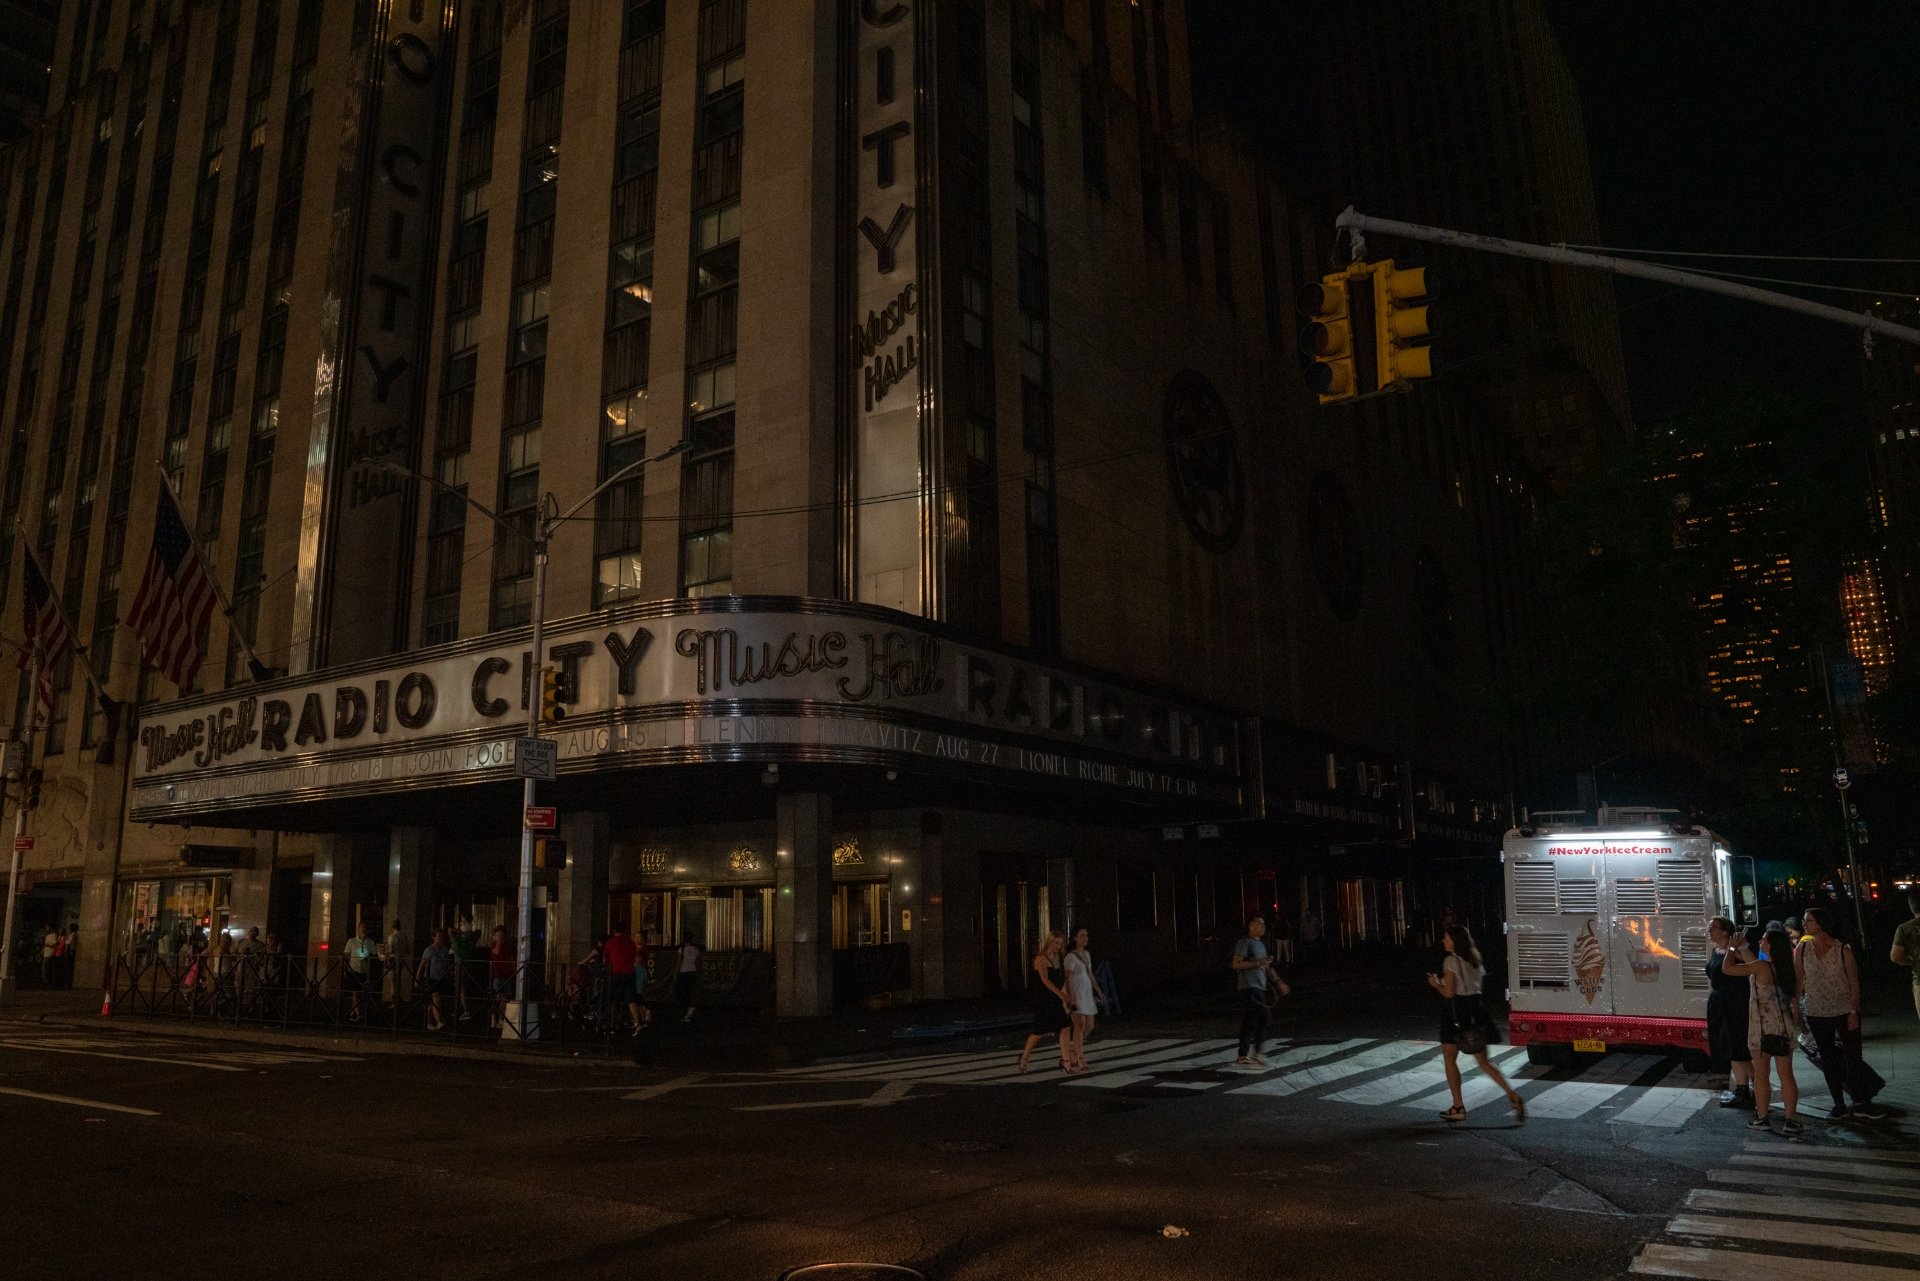 StubHub Refunds More Than $500,000 to Ticket Holders Affected by New York City Blackout